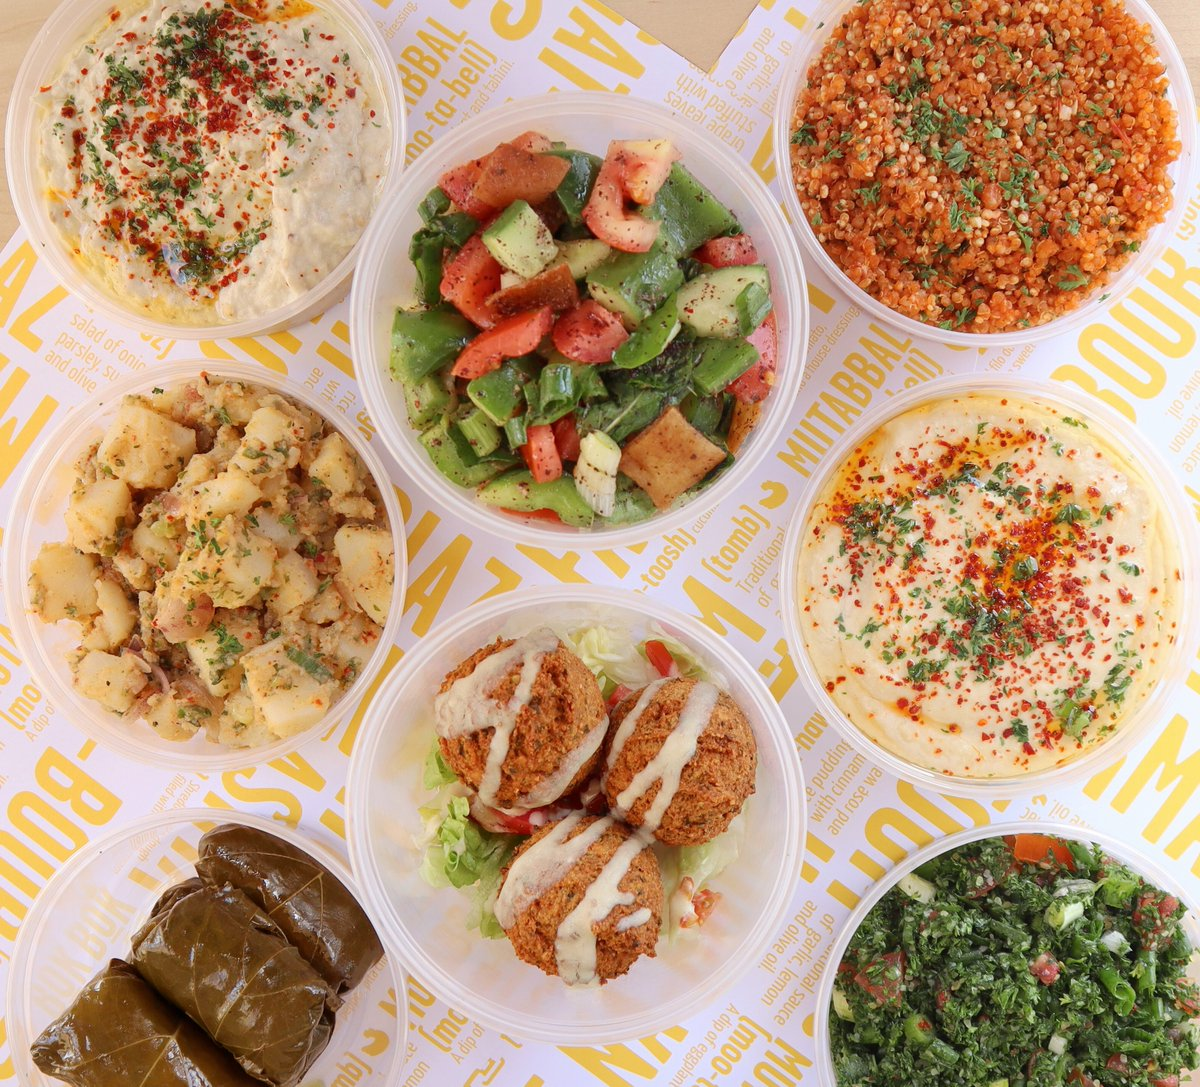 Order your plate and don't forget the SIDES!😋⠀ Our SIDES are made fresh daily and salads are tossed to order! ⠀ Tabouleh, falafel, stuffed grape leaves, hummus, potato salad, fattoush, quinoa salad, and eggplant dip. #eatbocboc #eatgoodfood #sides⠀ https://t.co/tAI5GKorxW